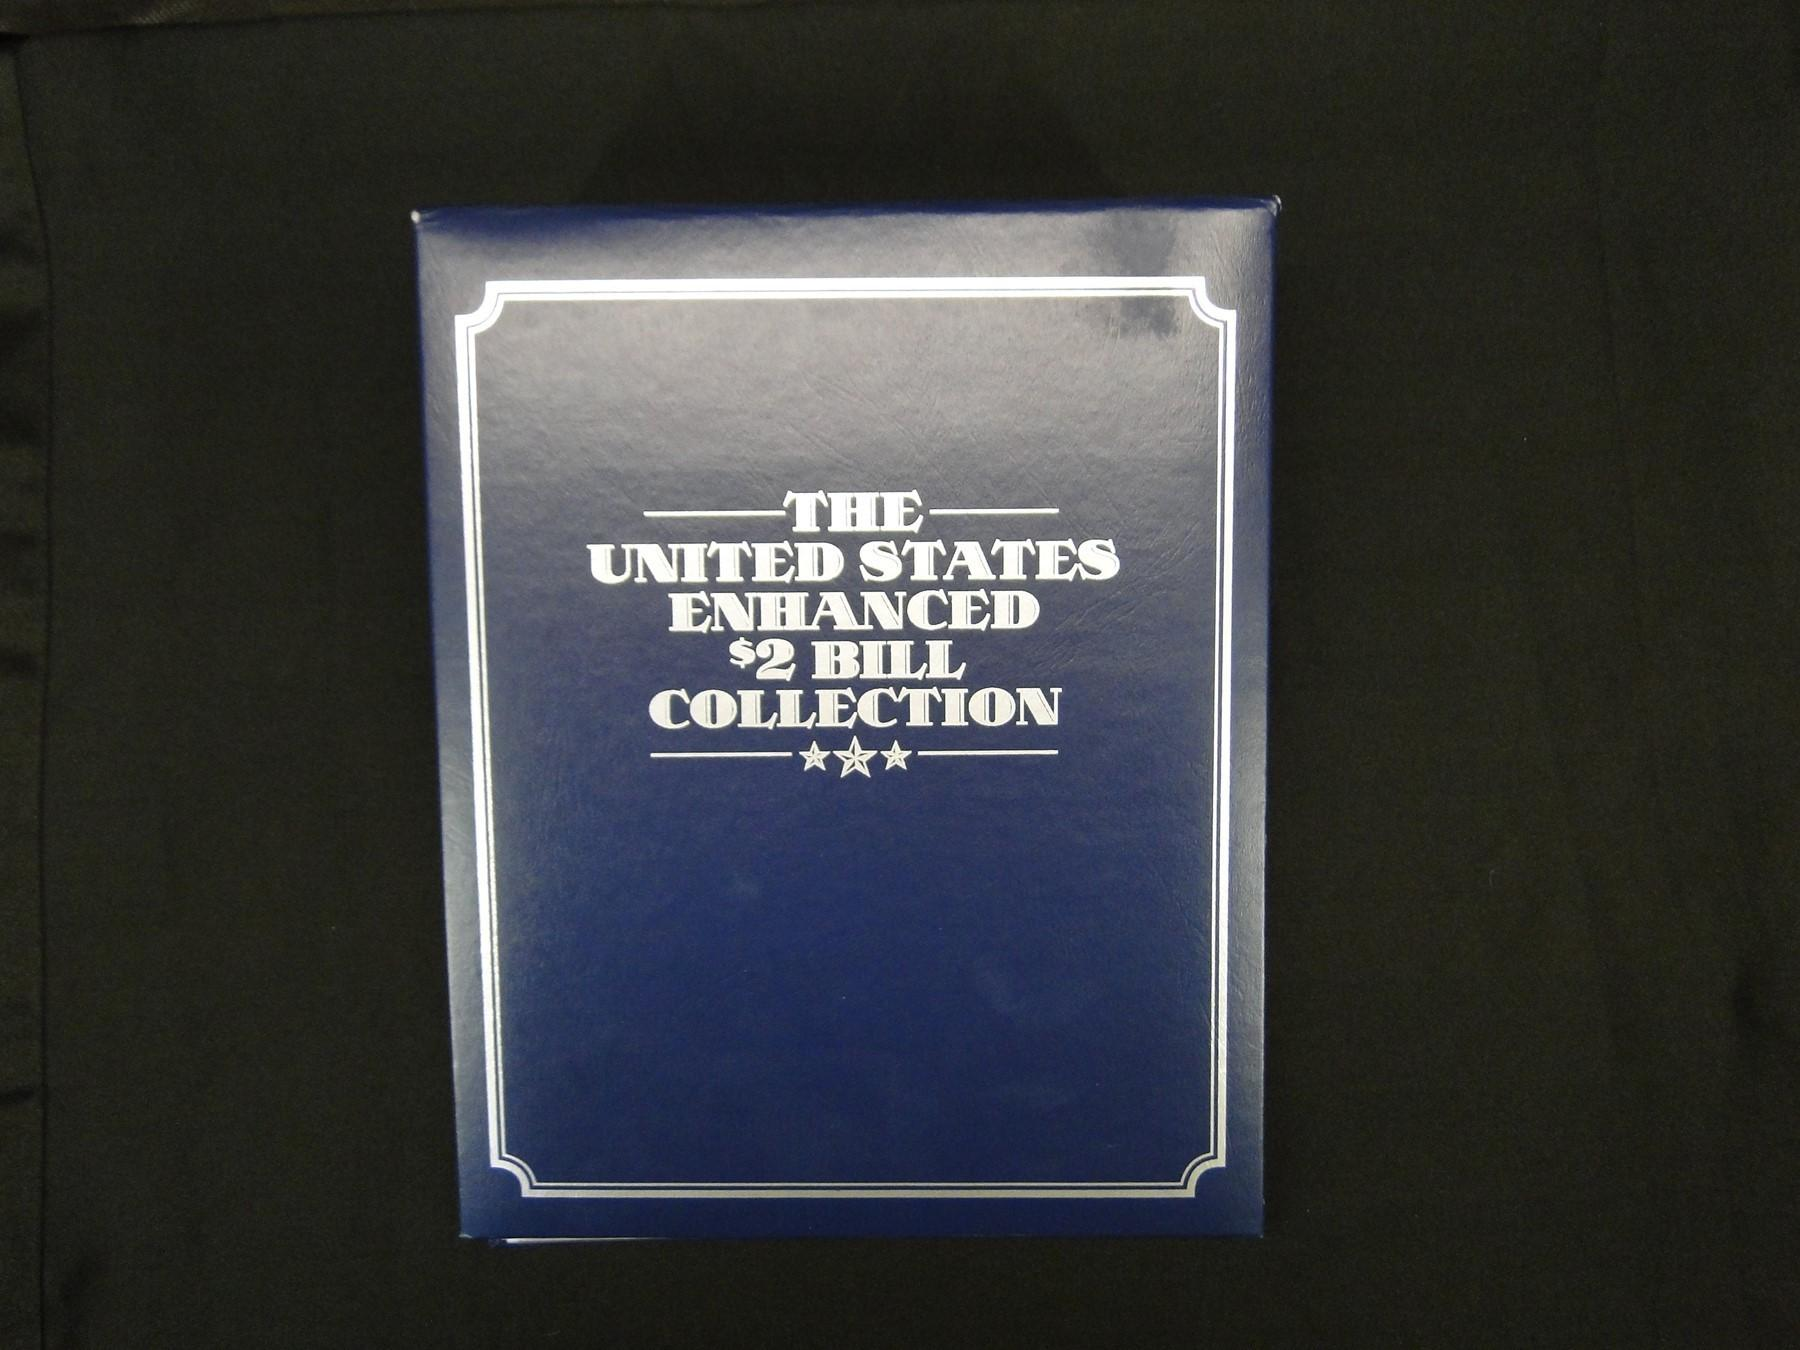 19 United States Enhanced $2. Bill Collection